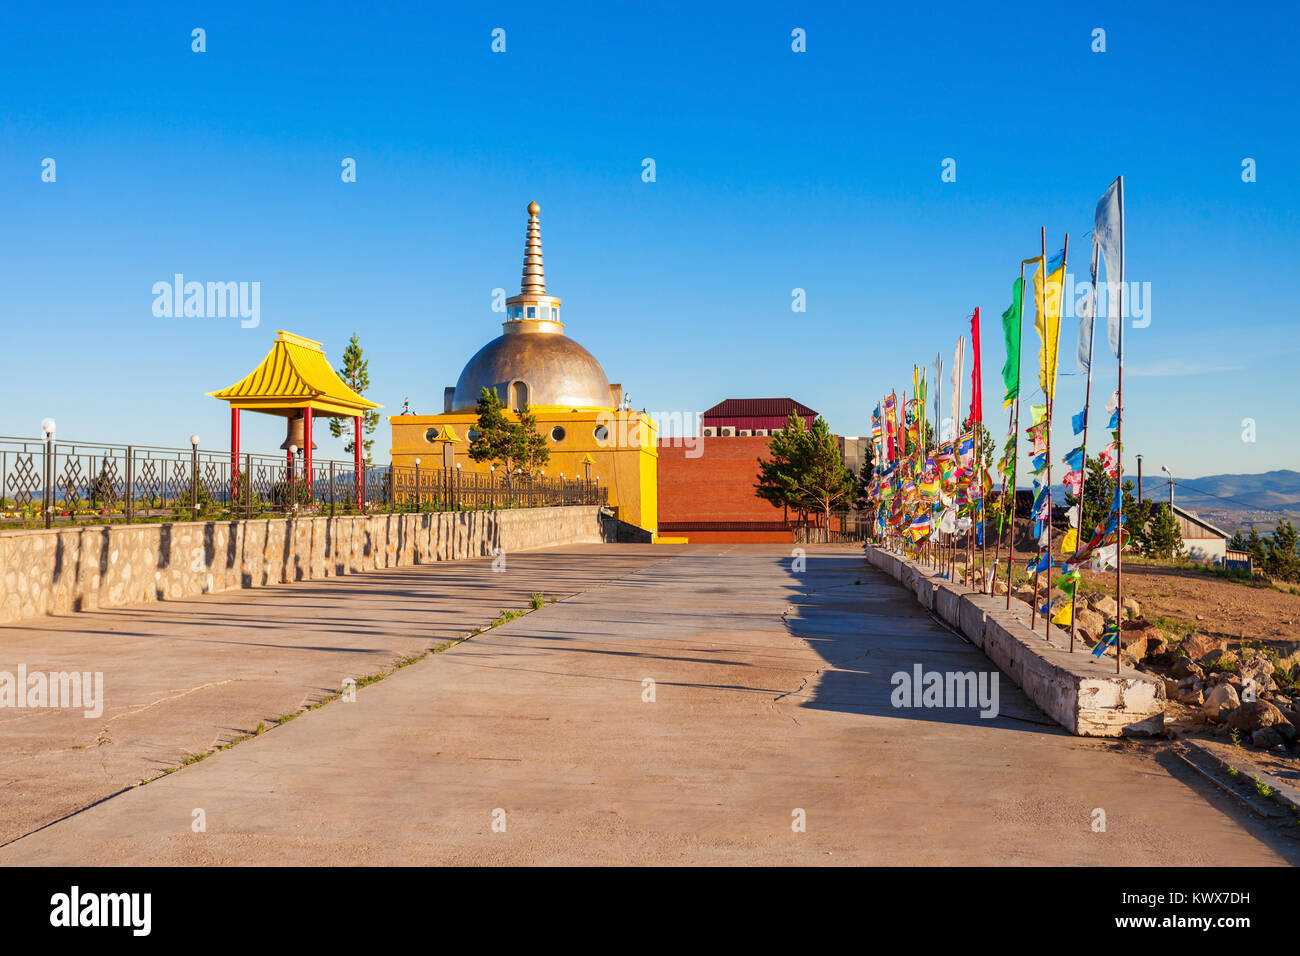 Datsan Rinpoche Bagsha in Ulan-Ude city of the Republic of Buryatia, Russia - Stock Image